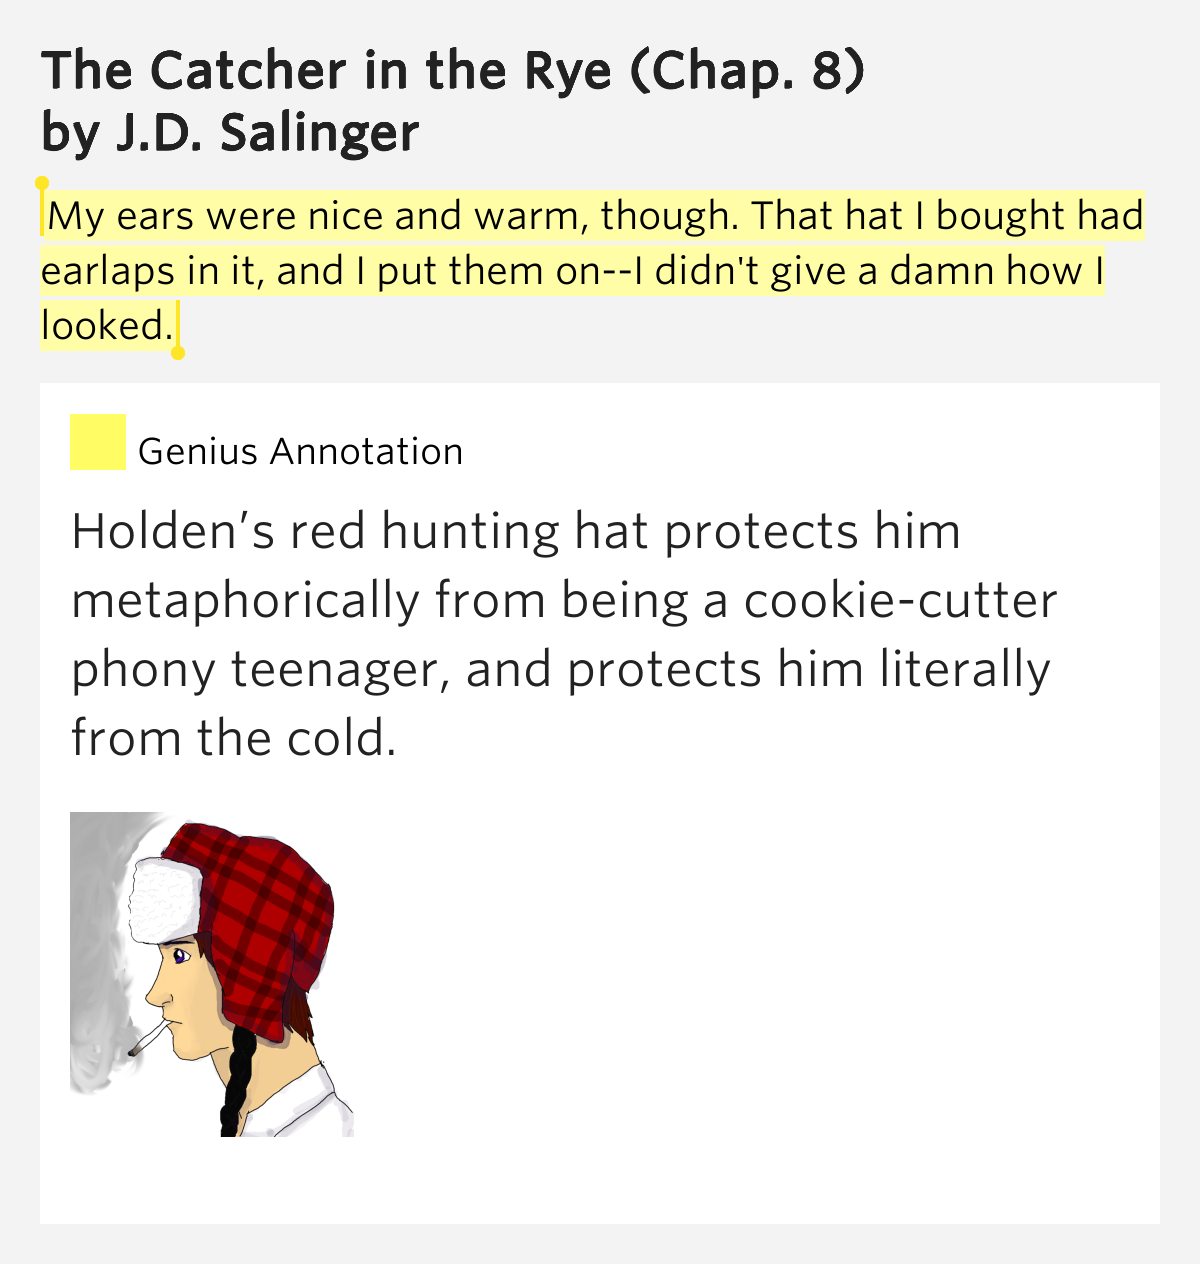 red hunting hat essay example The catcher in the rye by j d holden's red hunting hat holden claims he doesn't know much about egyptians in the failing essay he writes for mr.